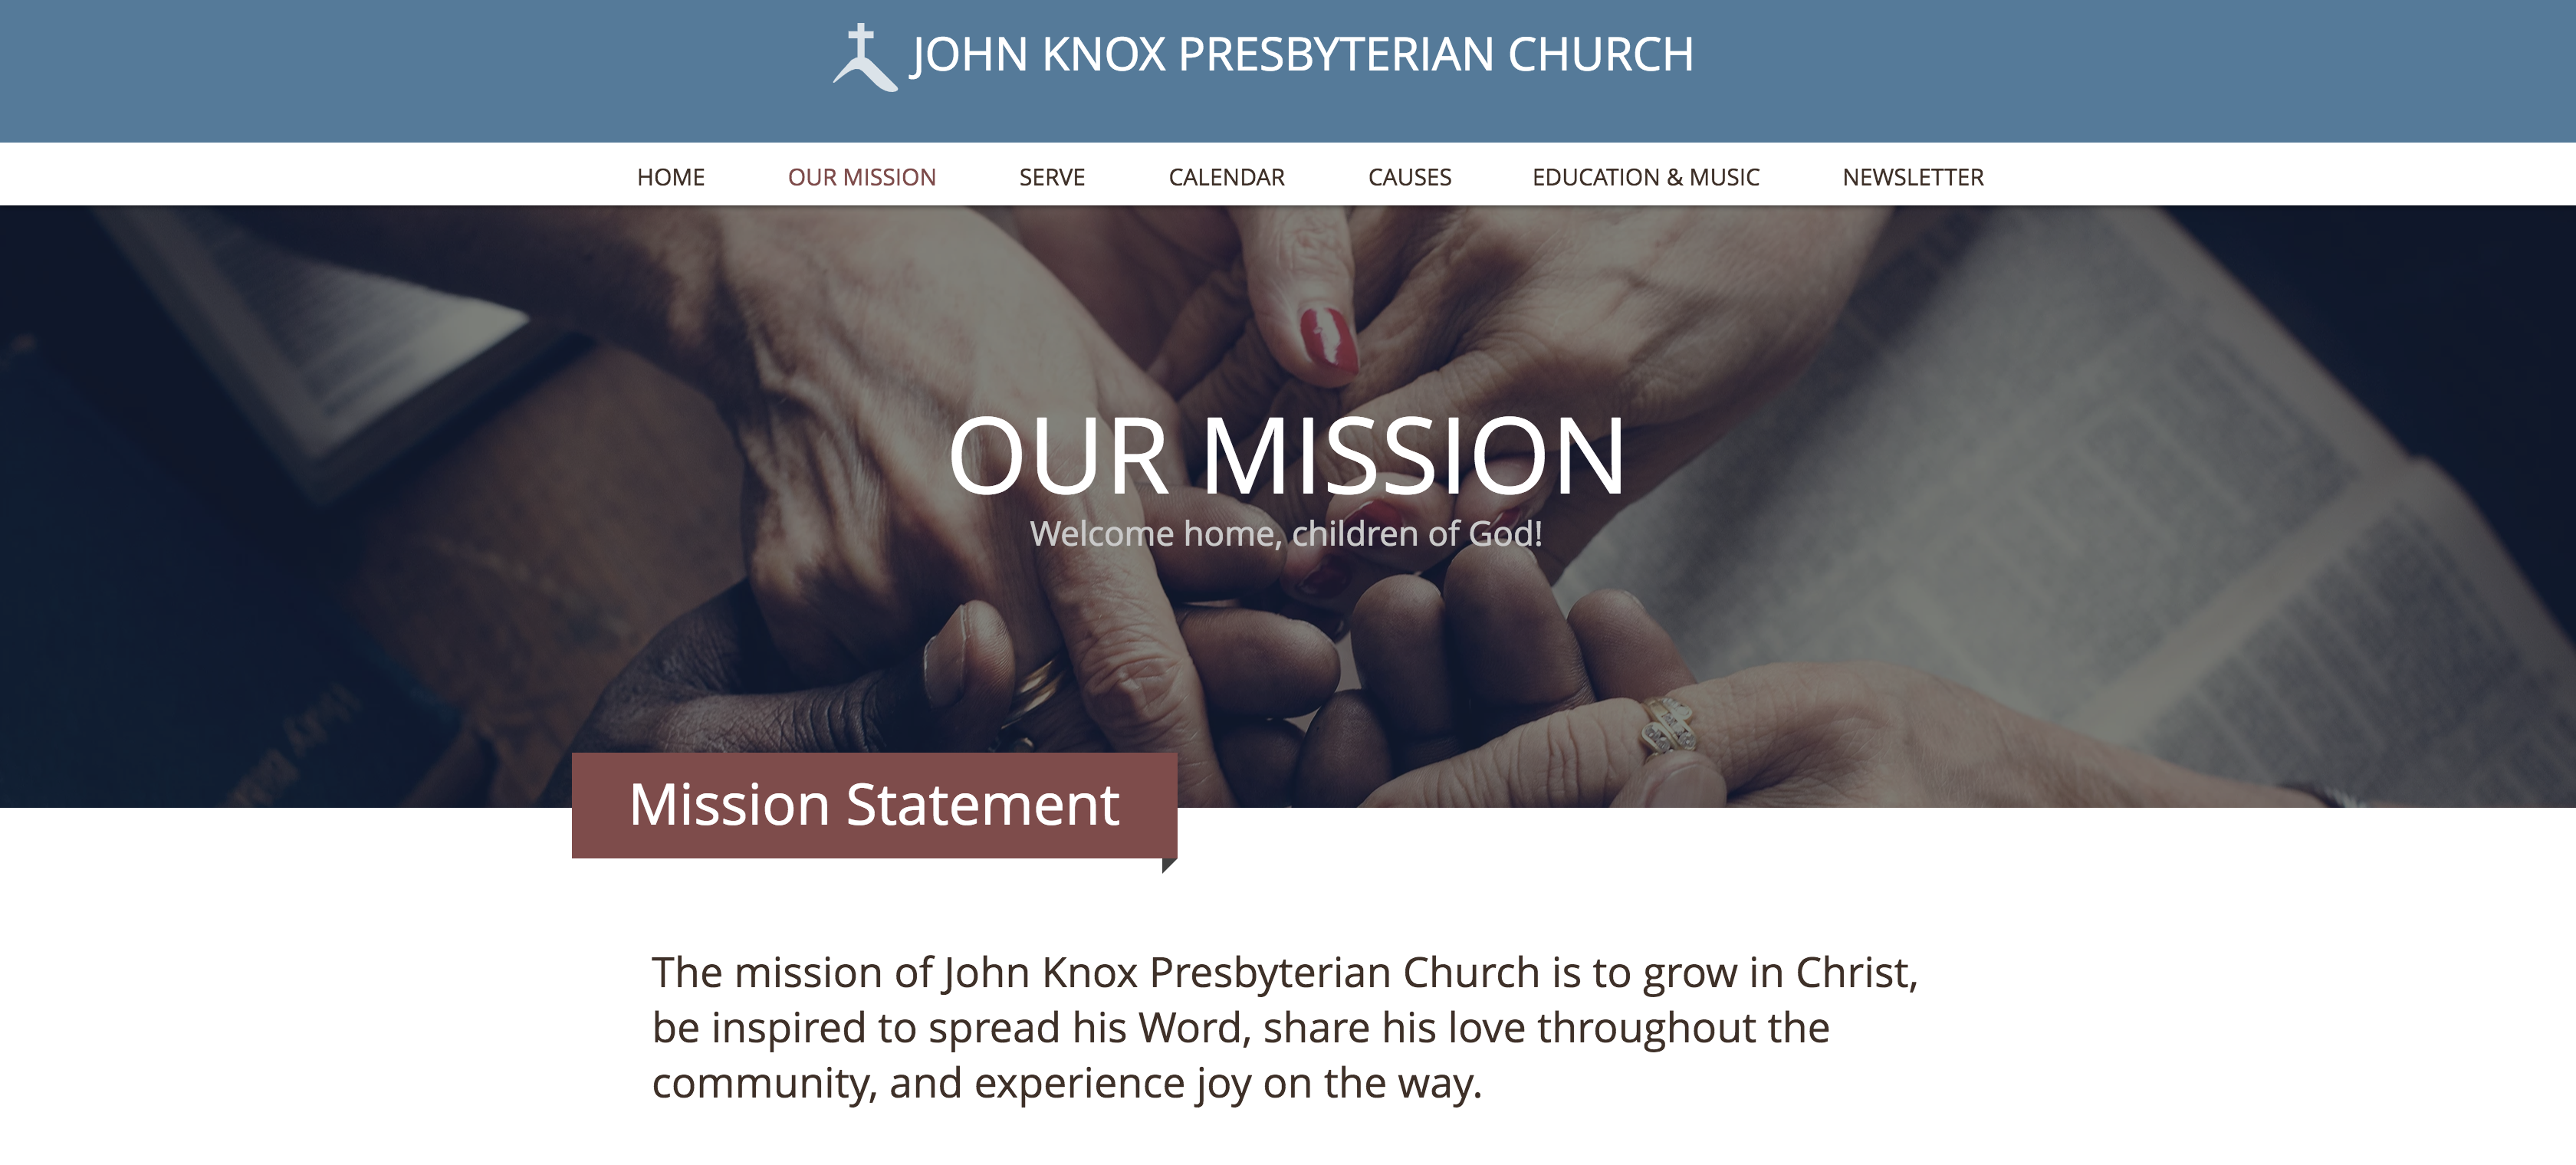 John Knox Presbyterian Church